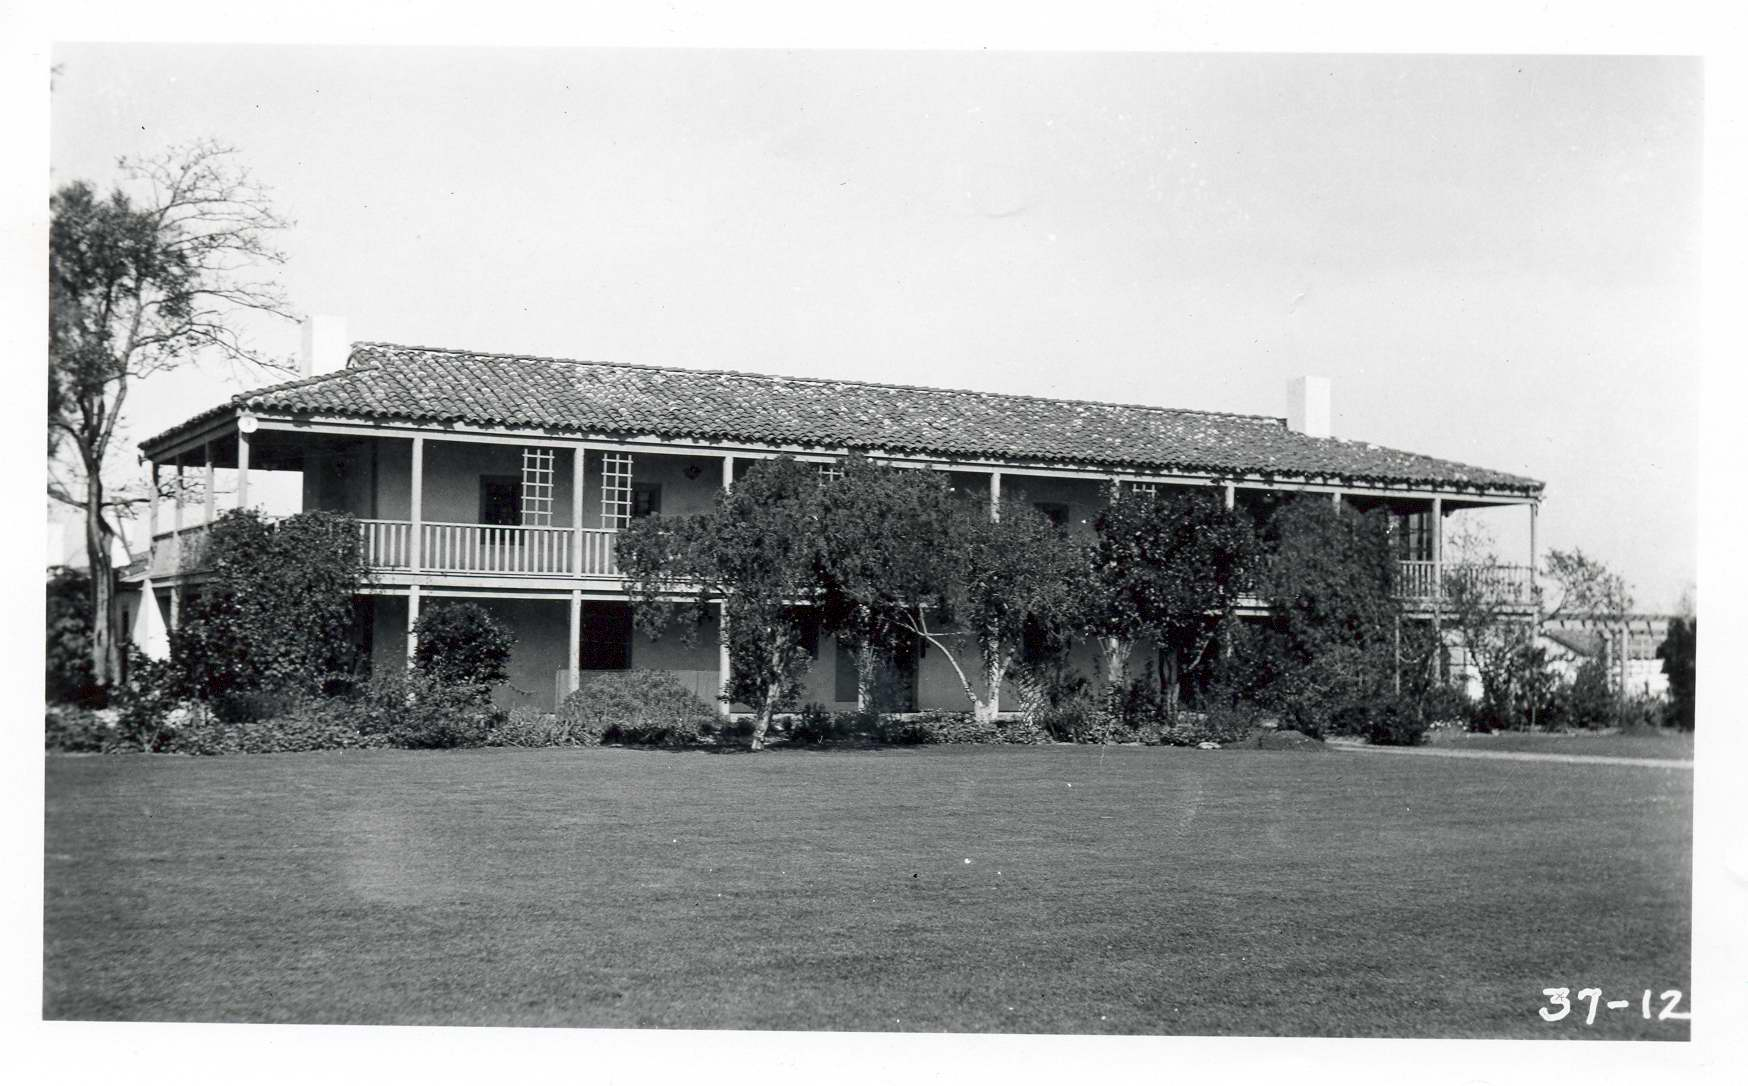 Rancho in the 1930s